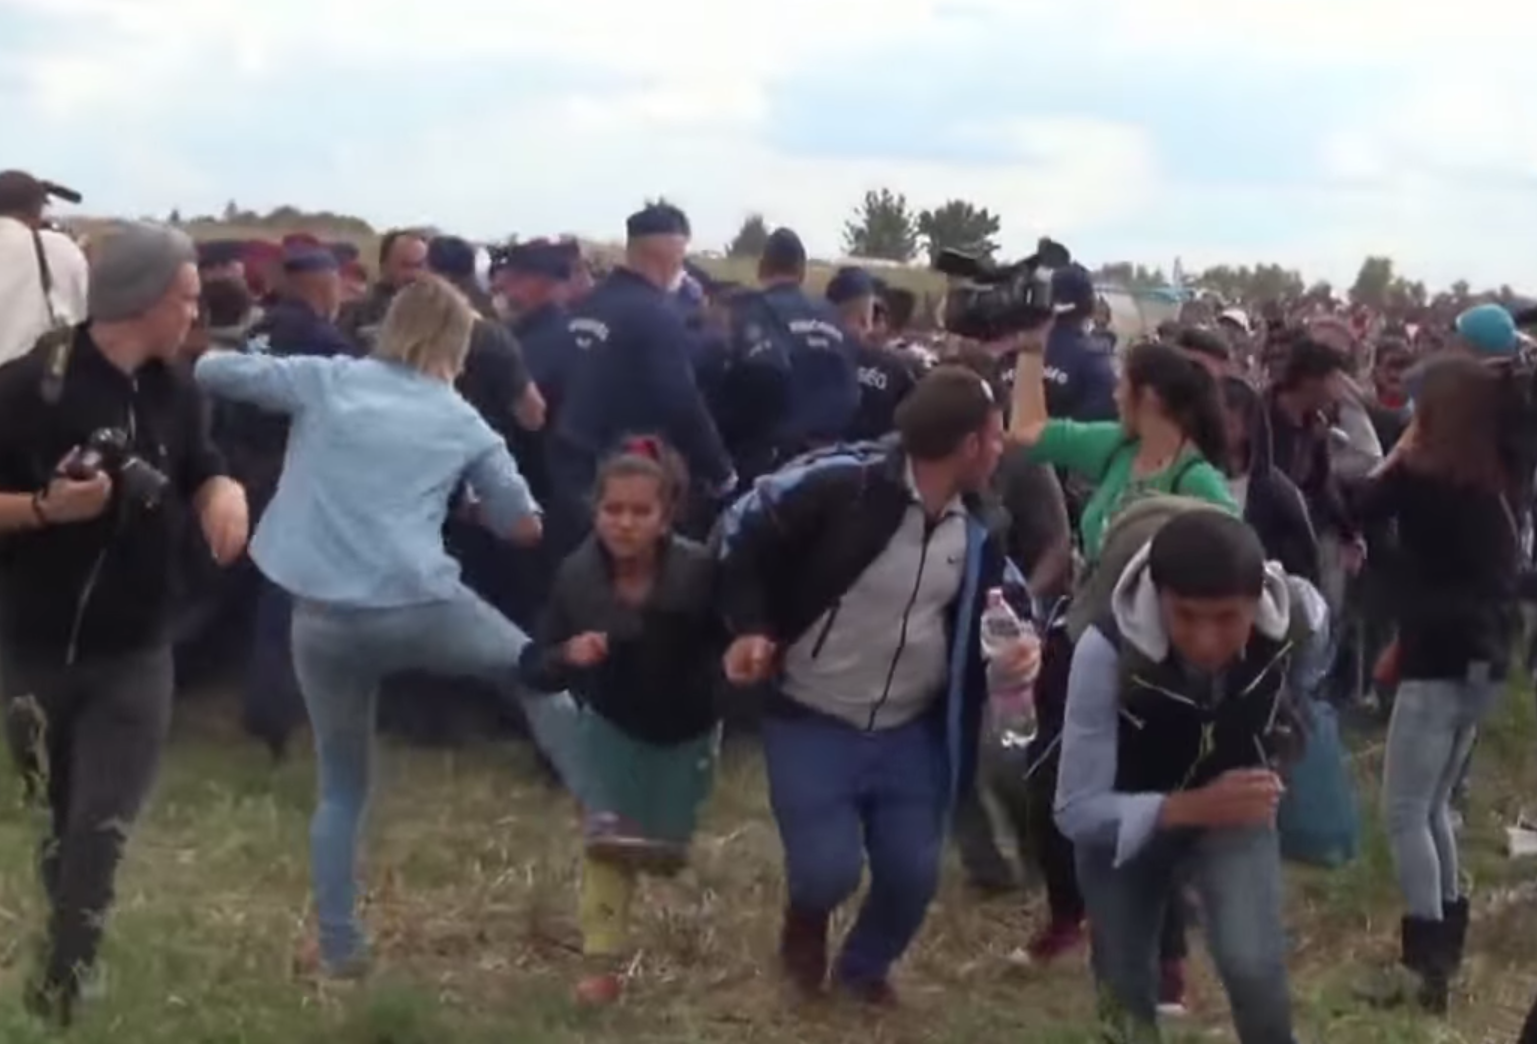 Top court clears camerawoman who kicked migrants of disorderly conduct charges